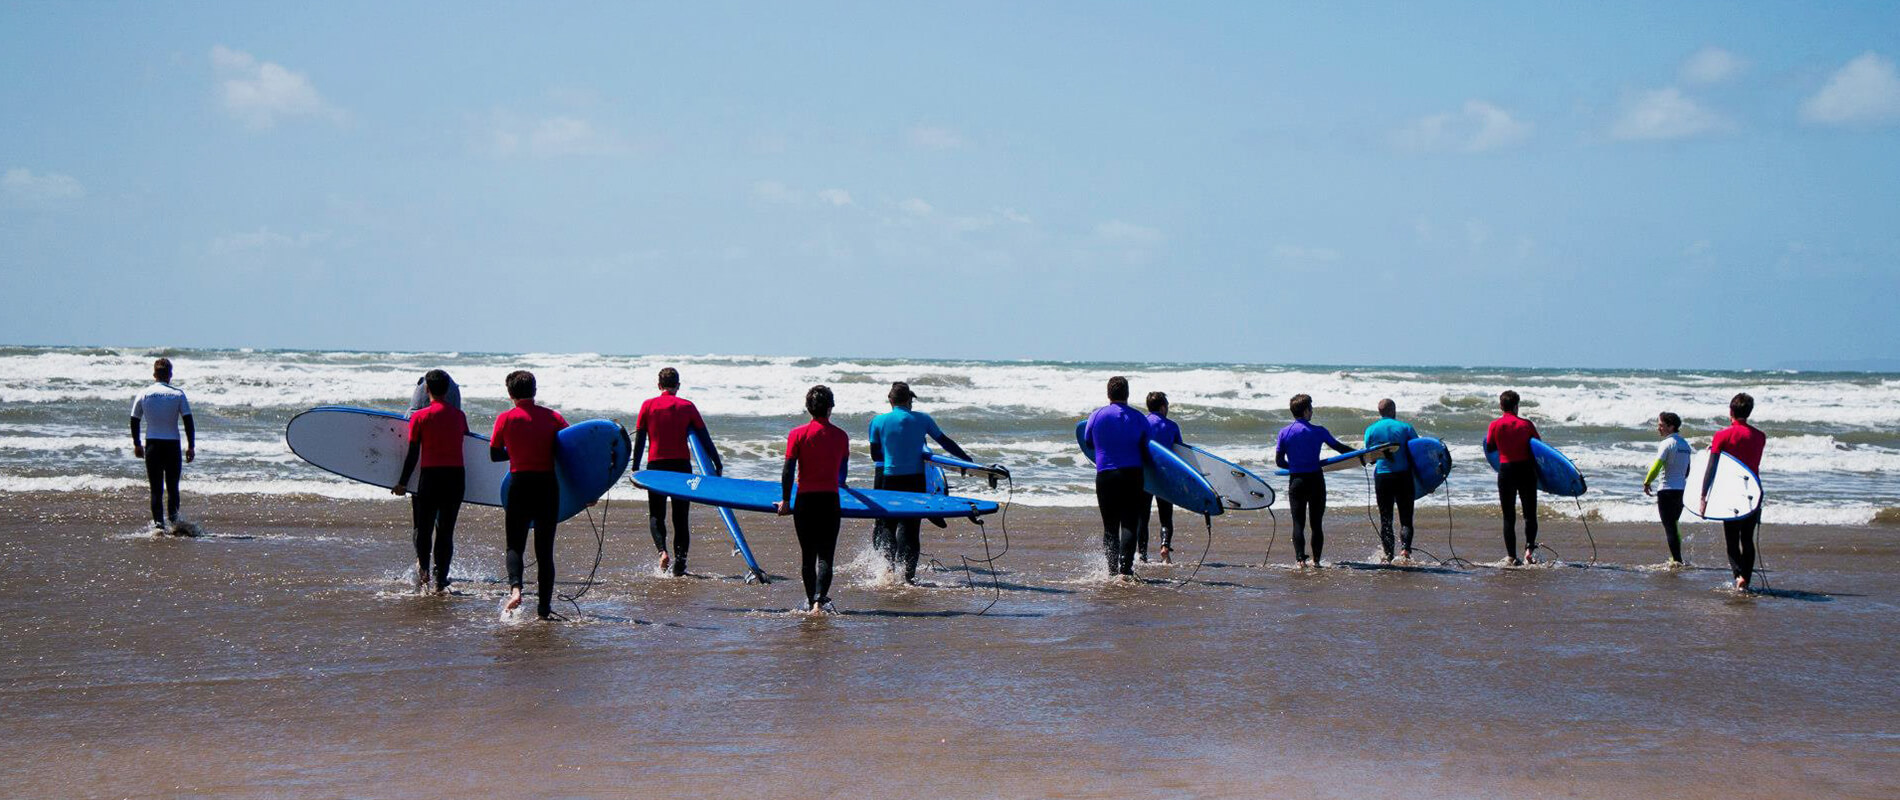 Surfers walking out to start their lesson